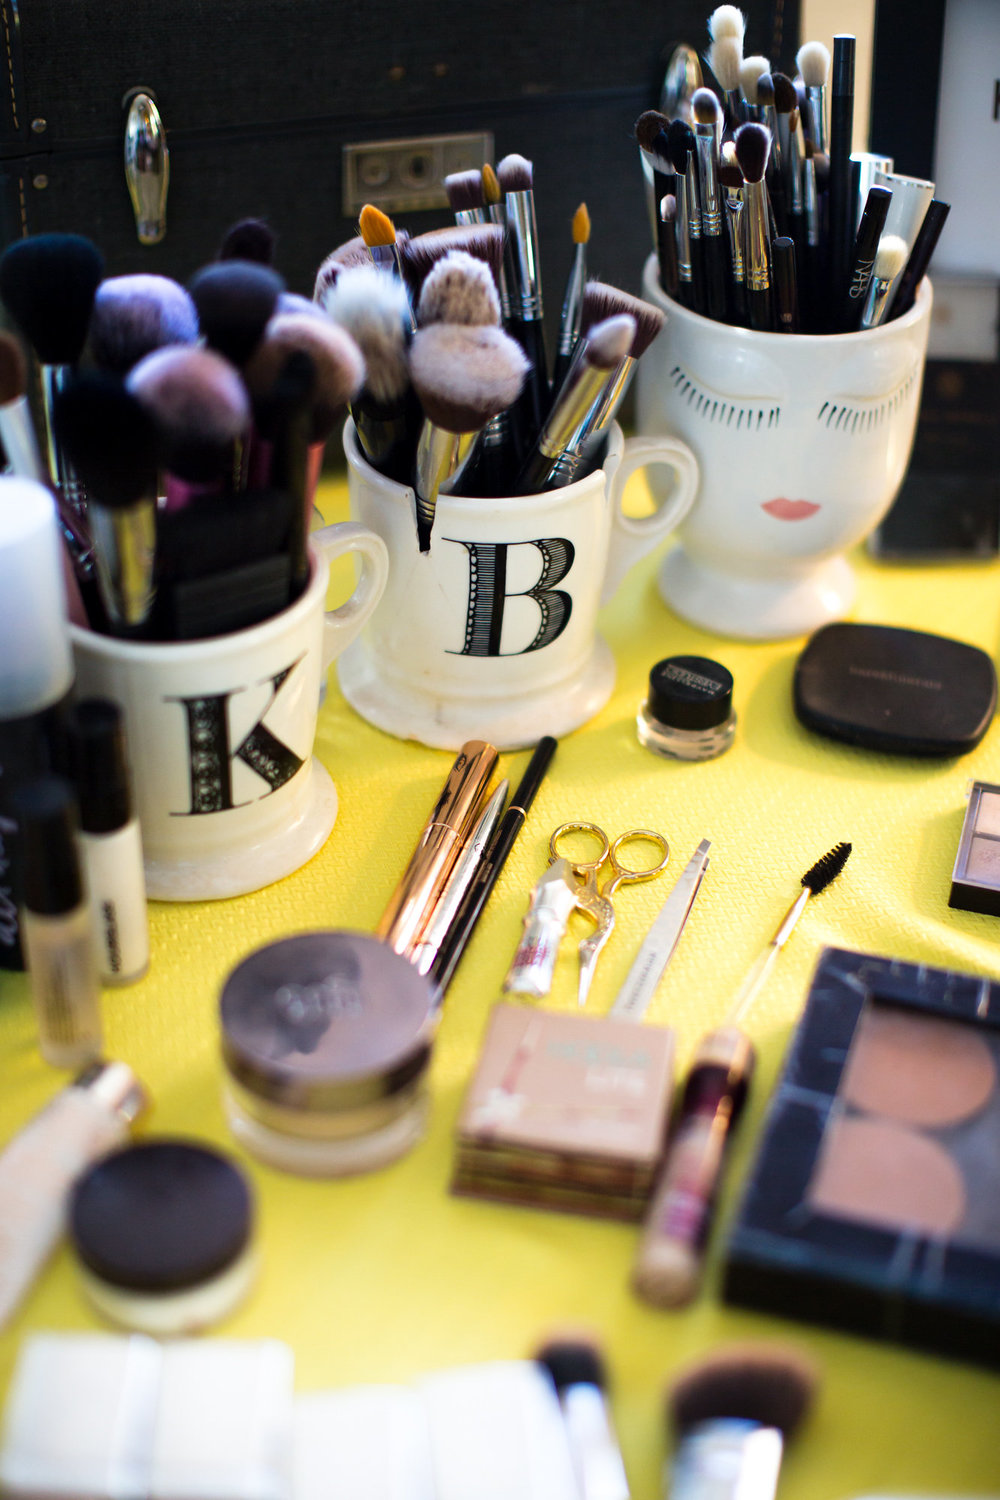 anthropologie mugs holding makeup brushes kim baker beauty san jose makeup artist at the holly farm in carmel valley